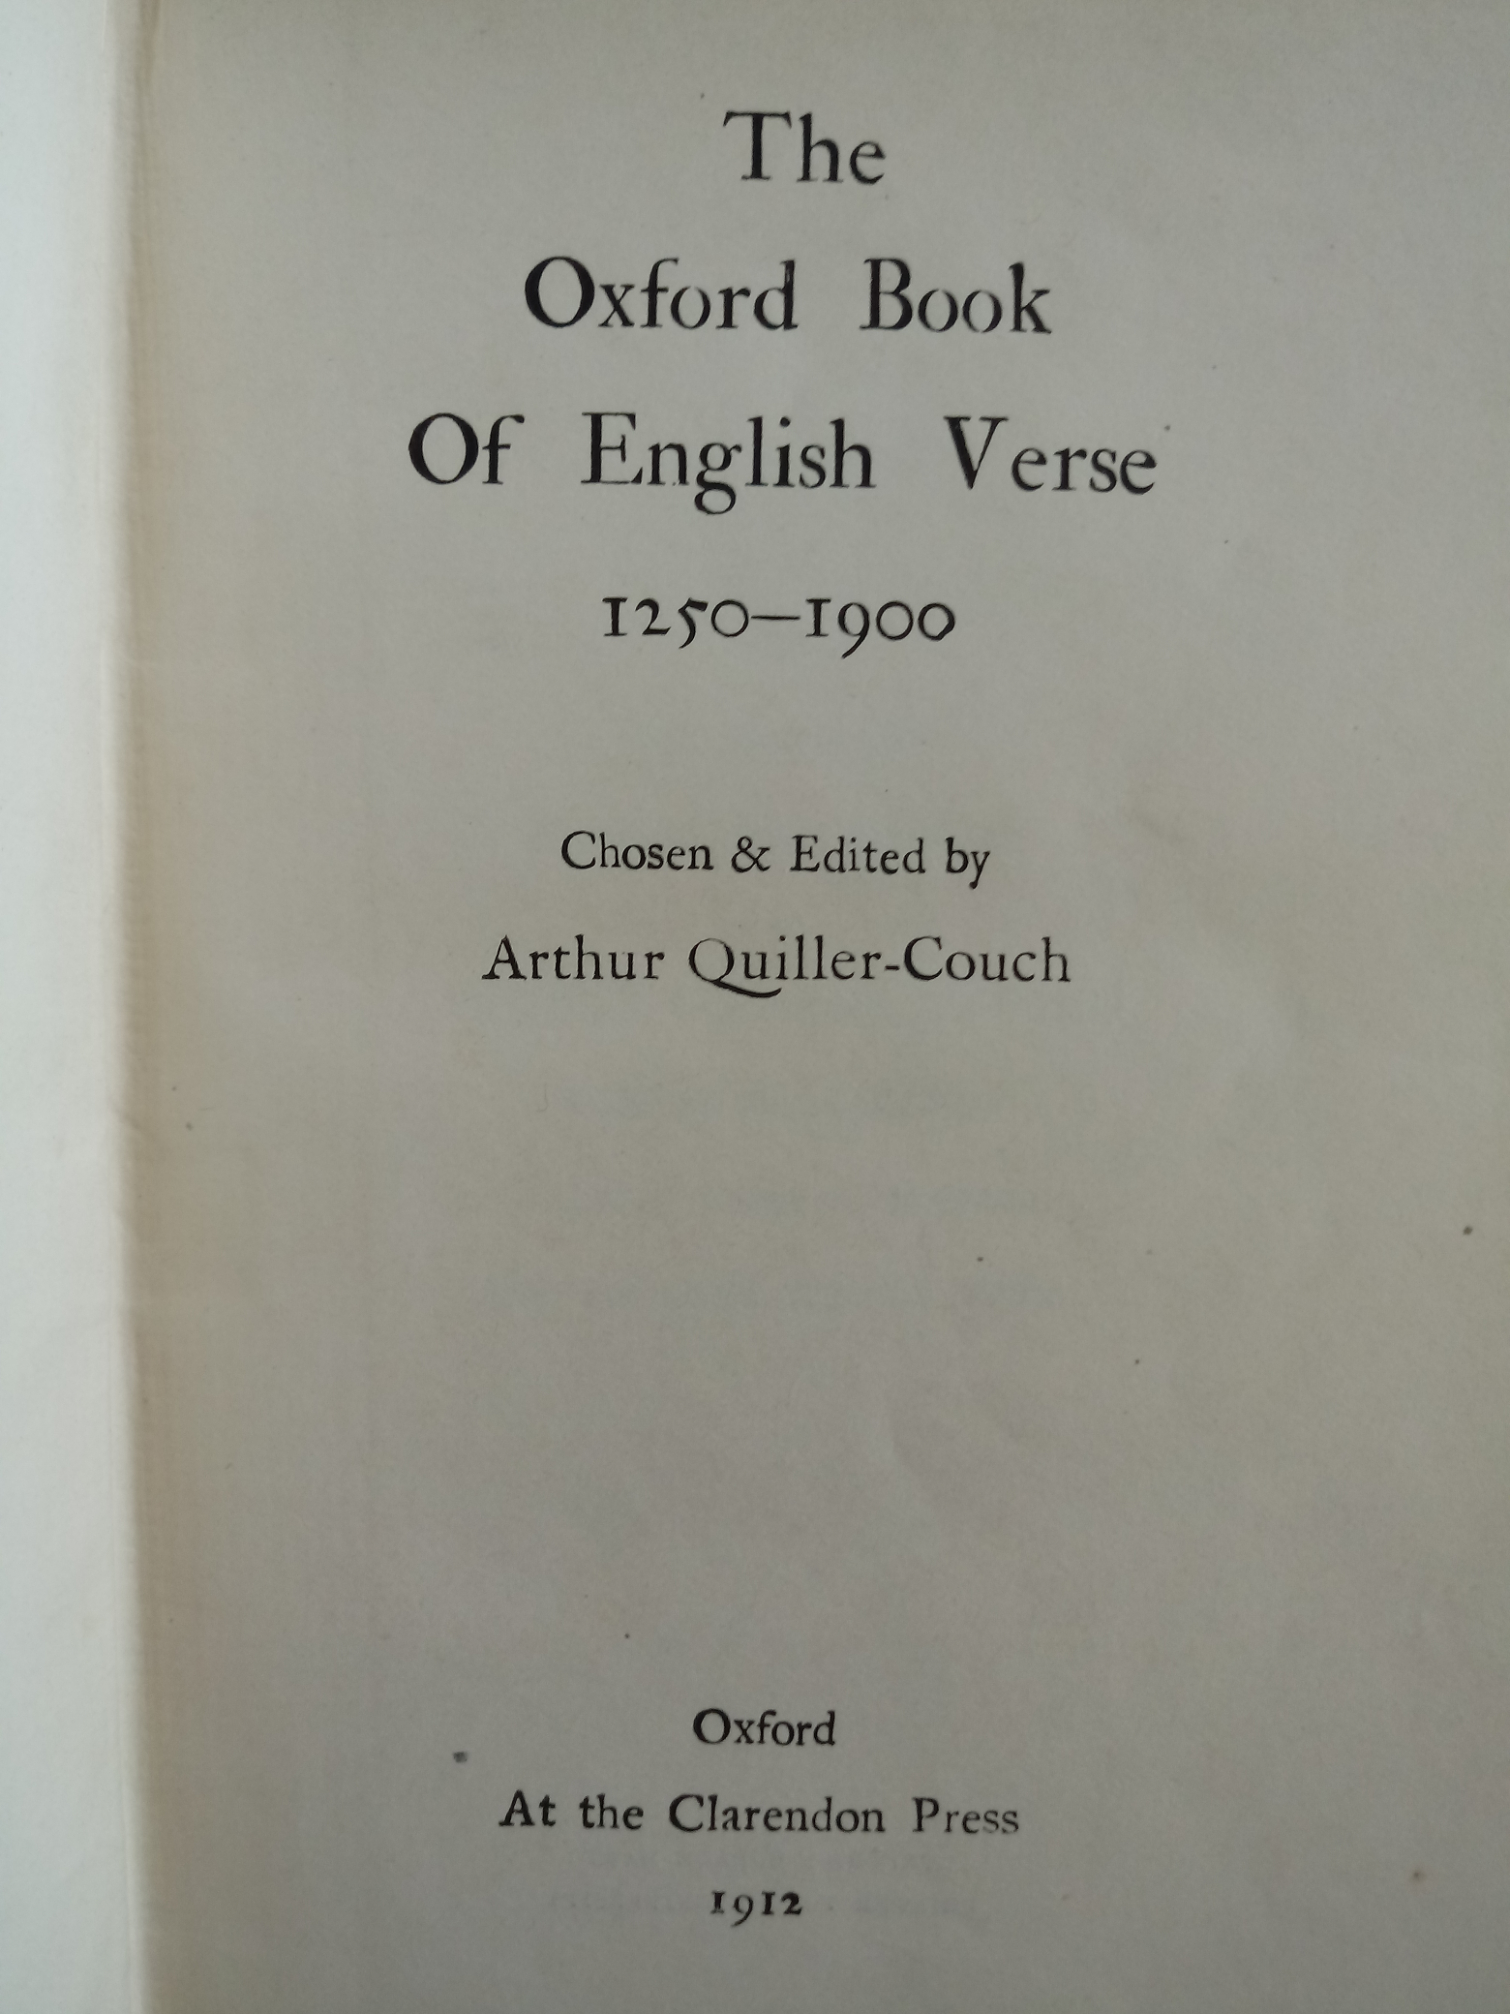 The Oxford book of English Verse 1250-1900 edited by Arthur Qquiller-Couch 1084 pages Published 1912 - Image 4 of 4